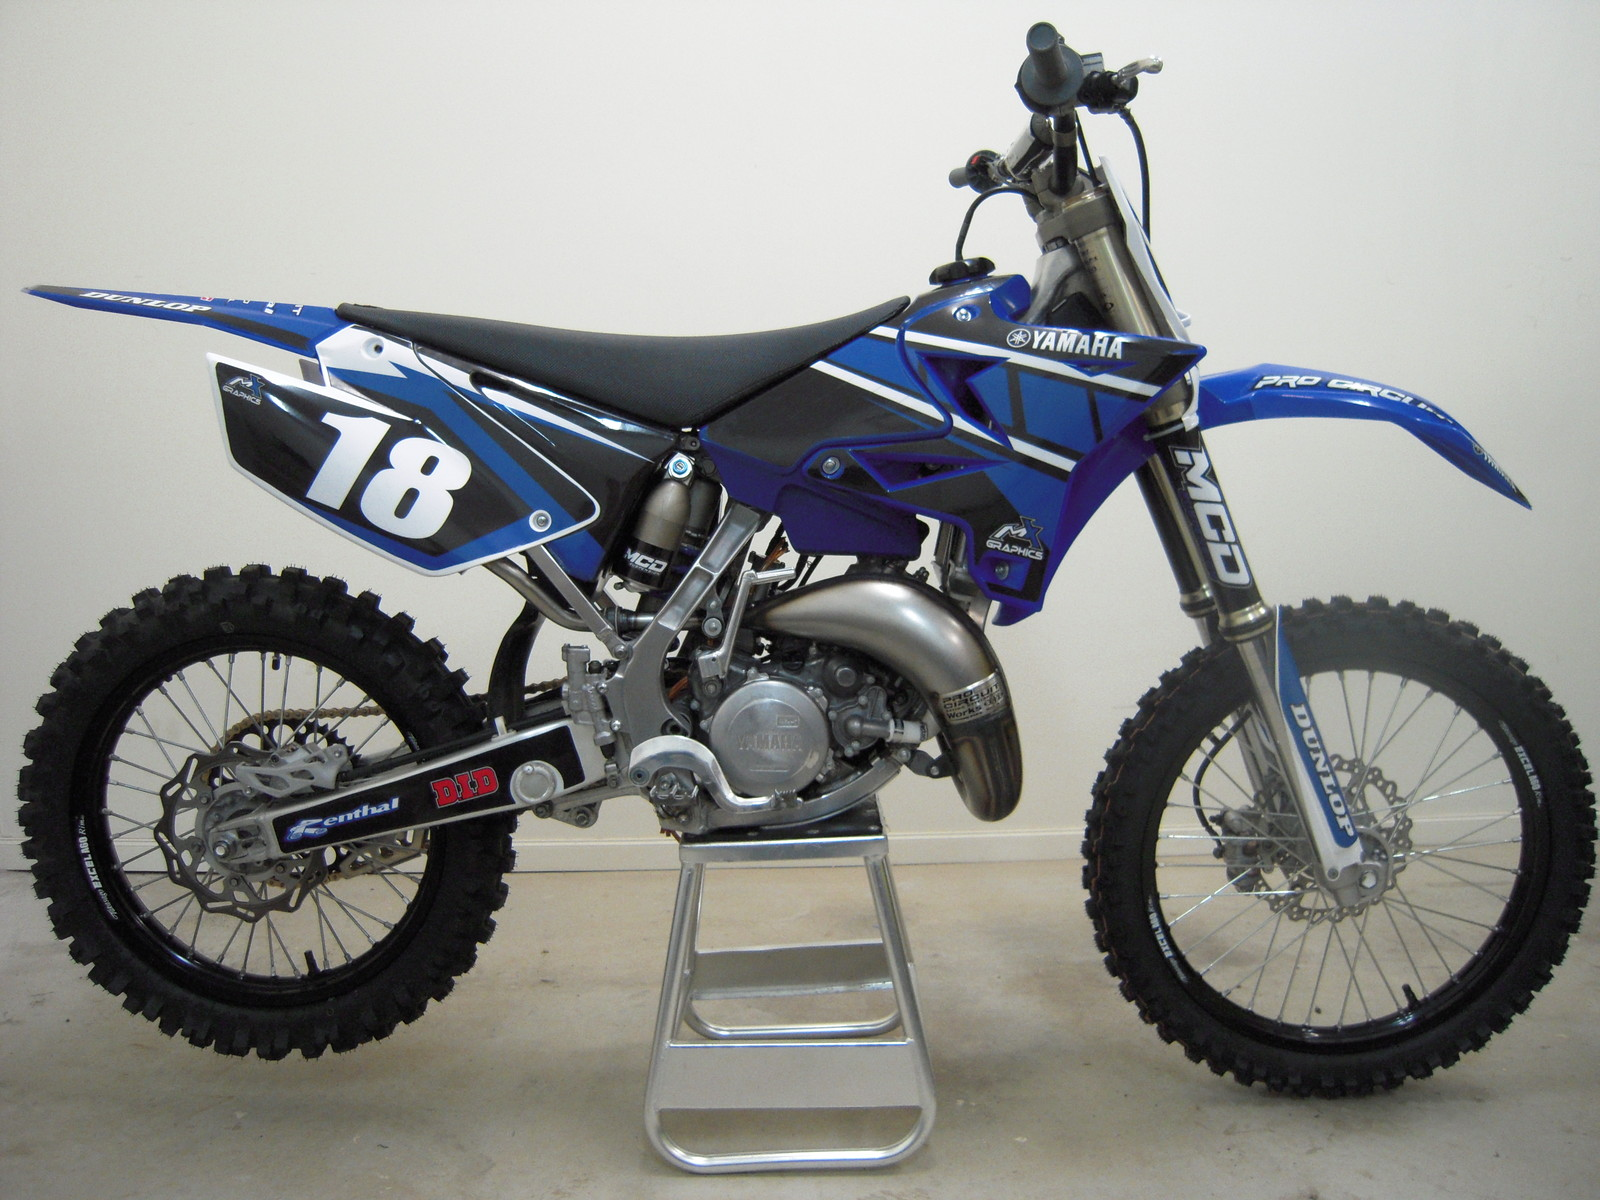 Purchased a second hand YZ 125 and just finished a ground up rebuild